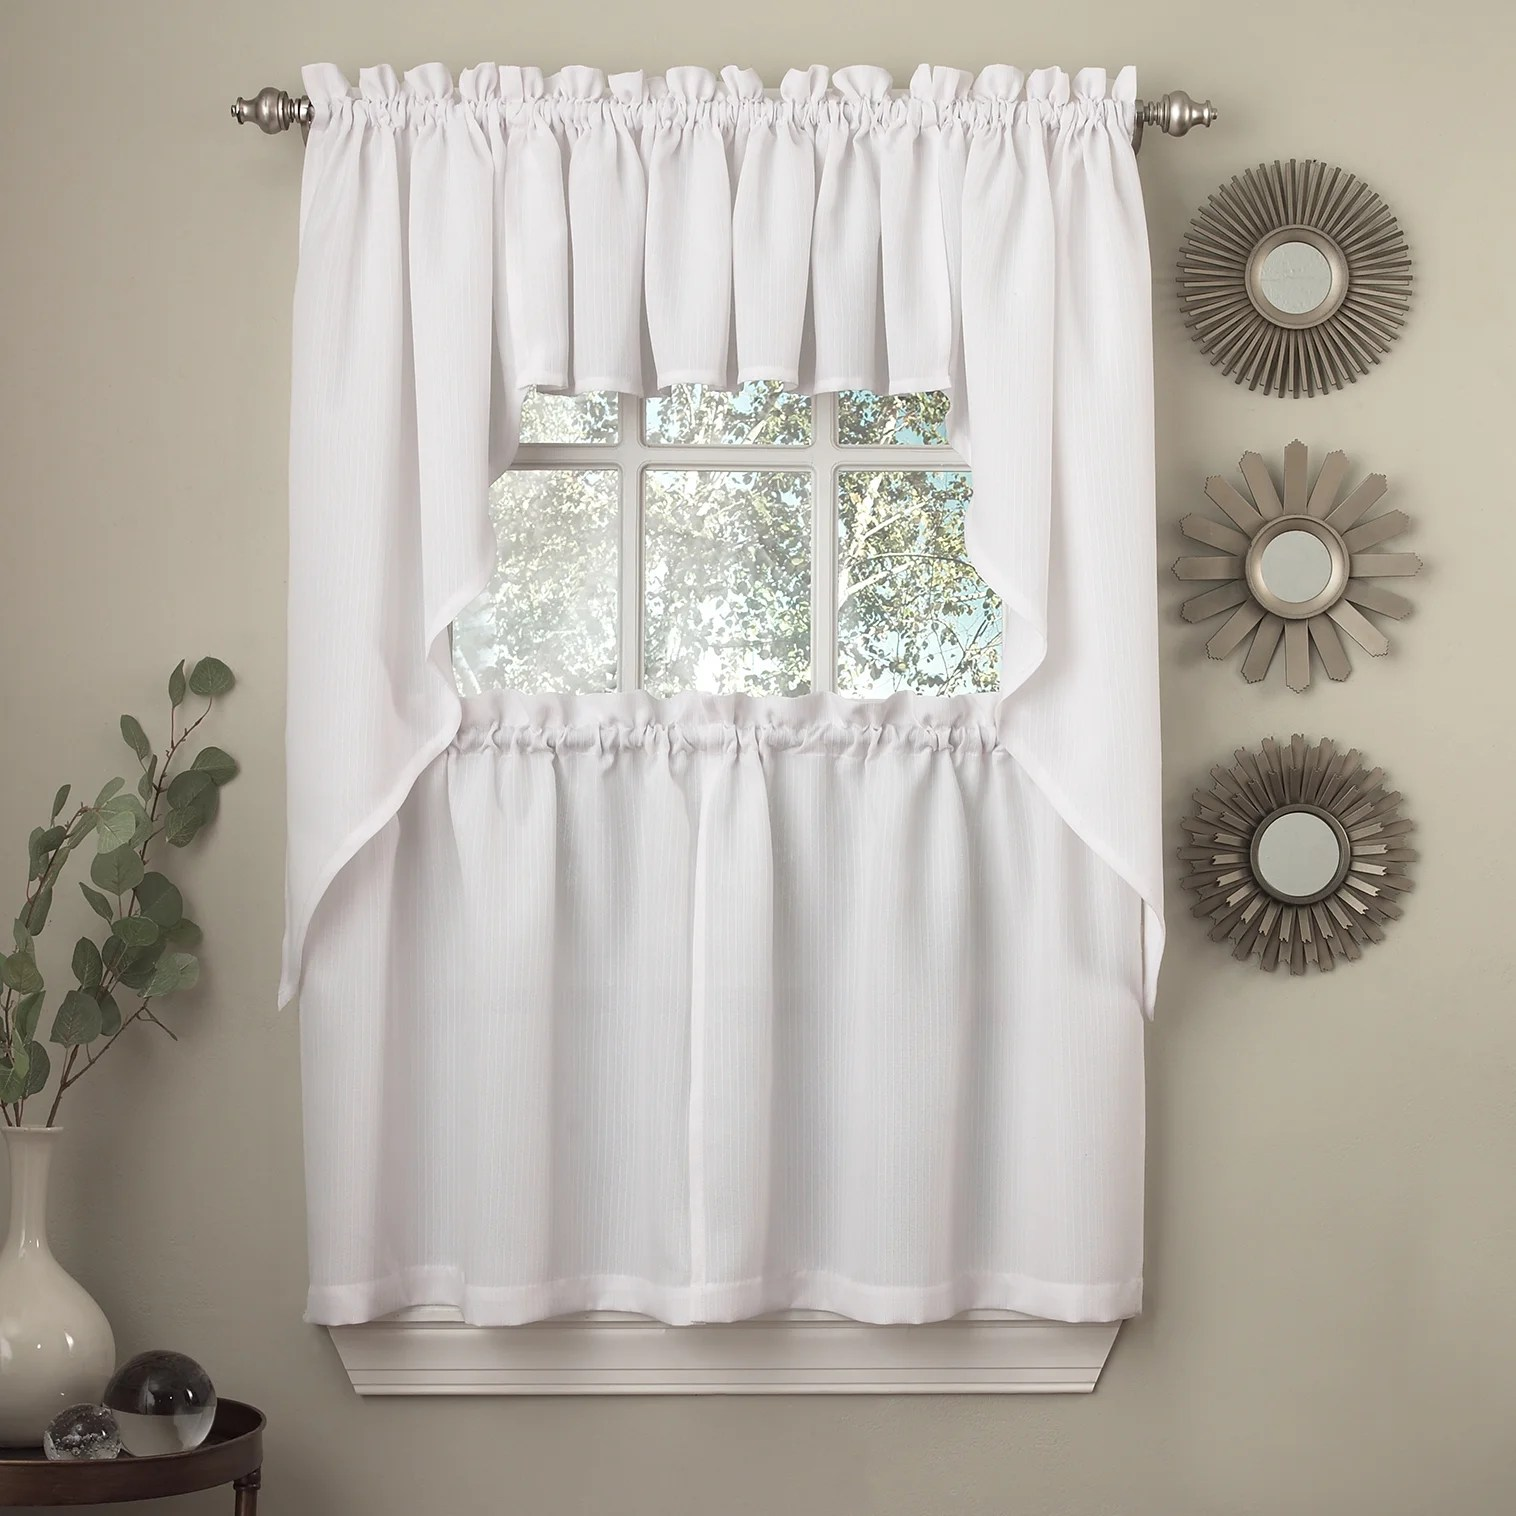 Grey And White Gingham Curtains Buy Curtain Tiers Online At Overstock Our Best Window Treatments